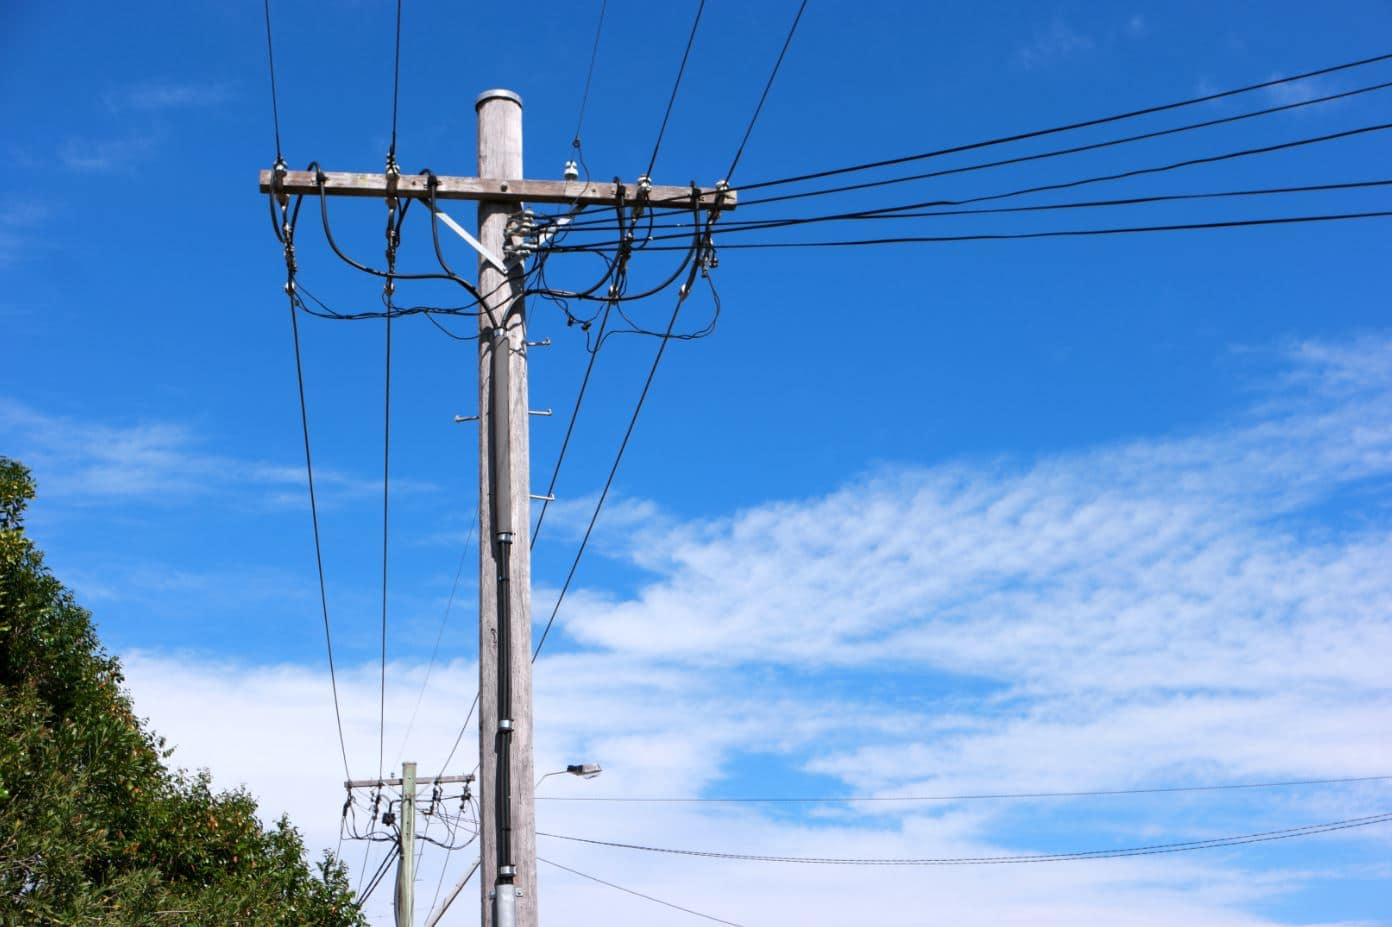 Australian Power Lines with sky and clouds in the background